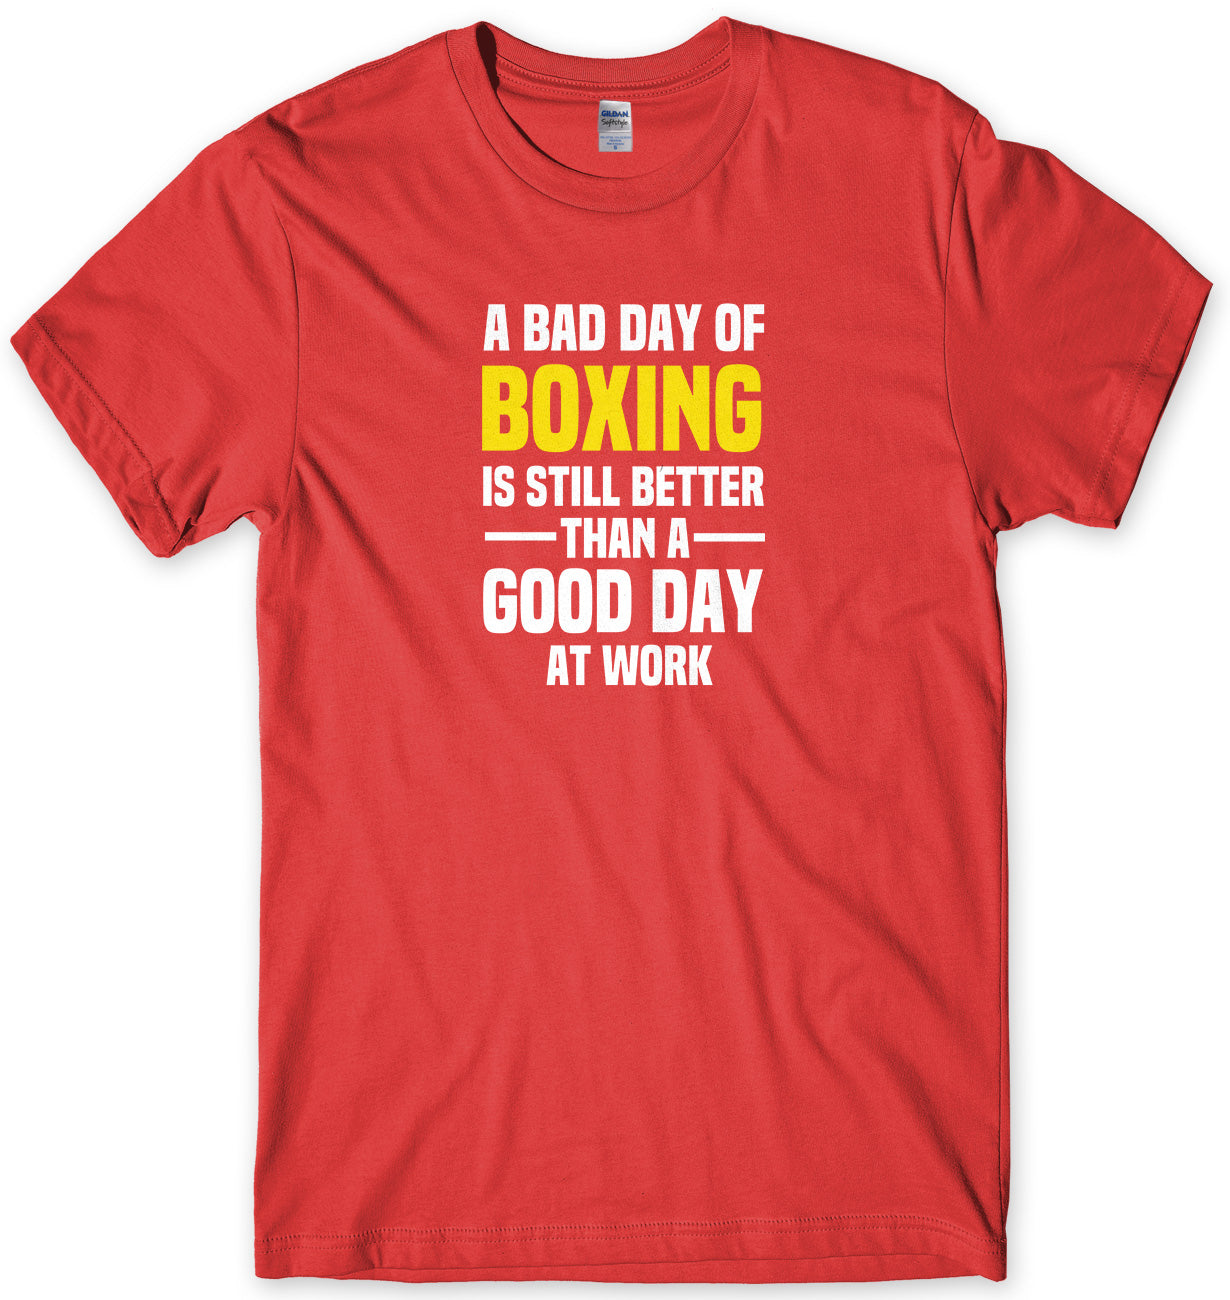 A BAD DAY OF BOXING IS STILL BETTER THAN A GOOD DAY AT WORK MENS FUNNY SLOGAN UNISEX T-SHIRT - StreetSide Surgeons